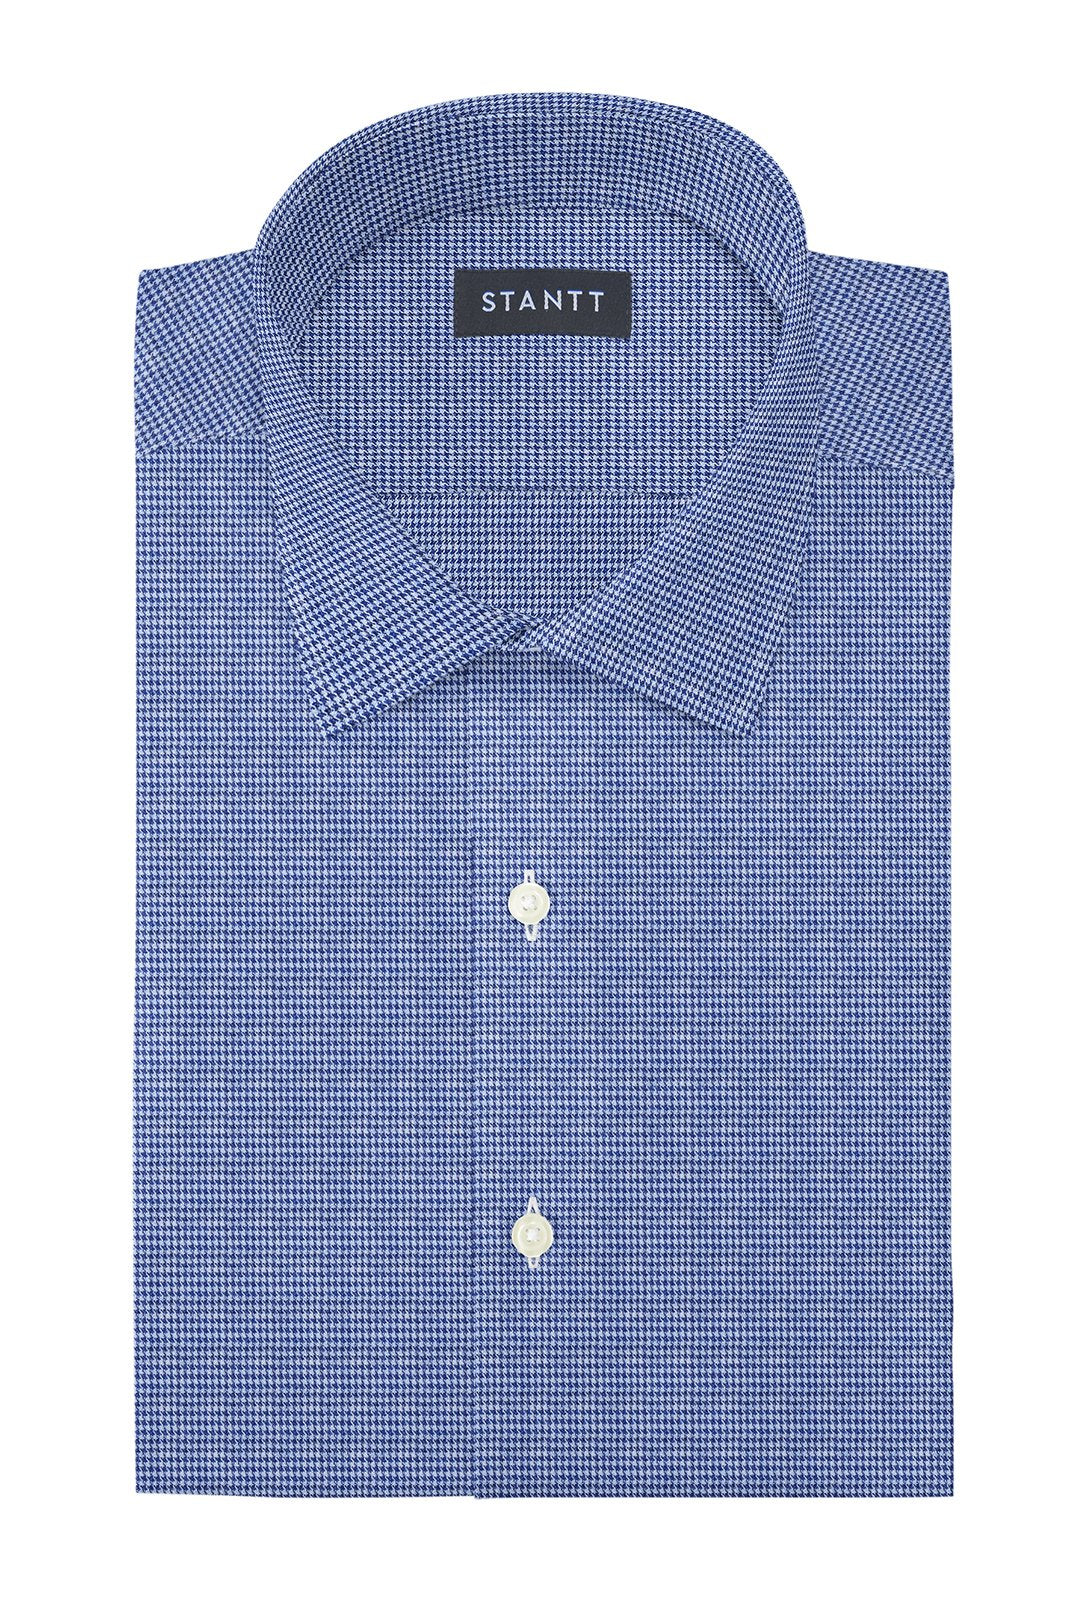 Slate Blue Houndstooth Flannel: Modified-Spread Collar, Barrel Cuff